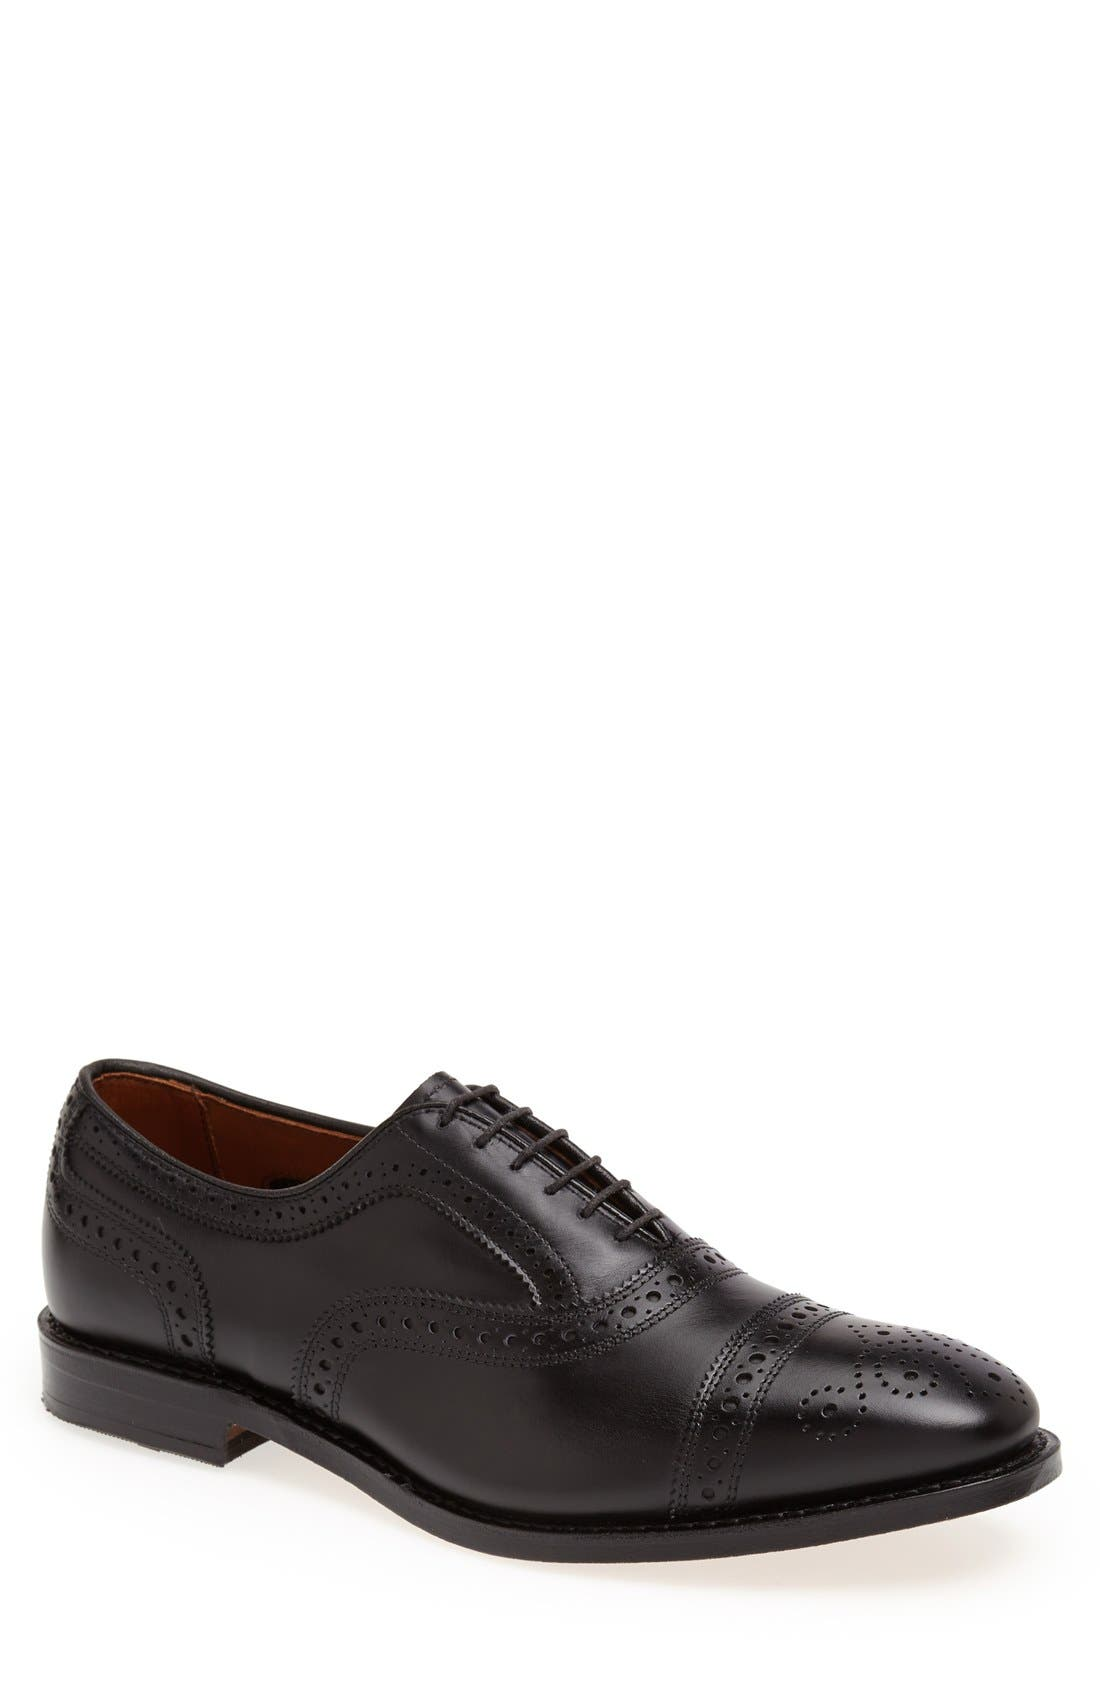 Alternate Image 1 Selected - Allen Edmonds 'Strand' Cap Toe Oxford (Men)